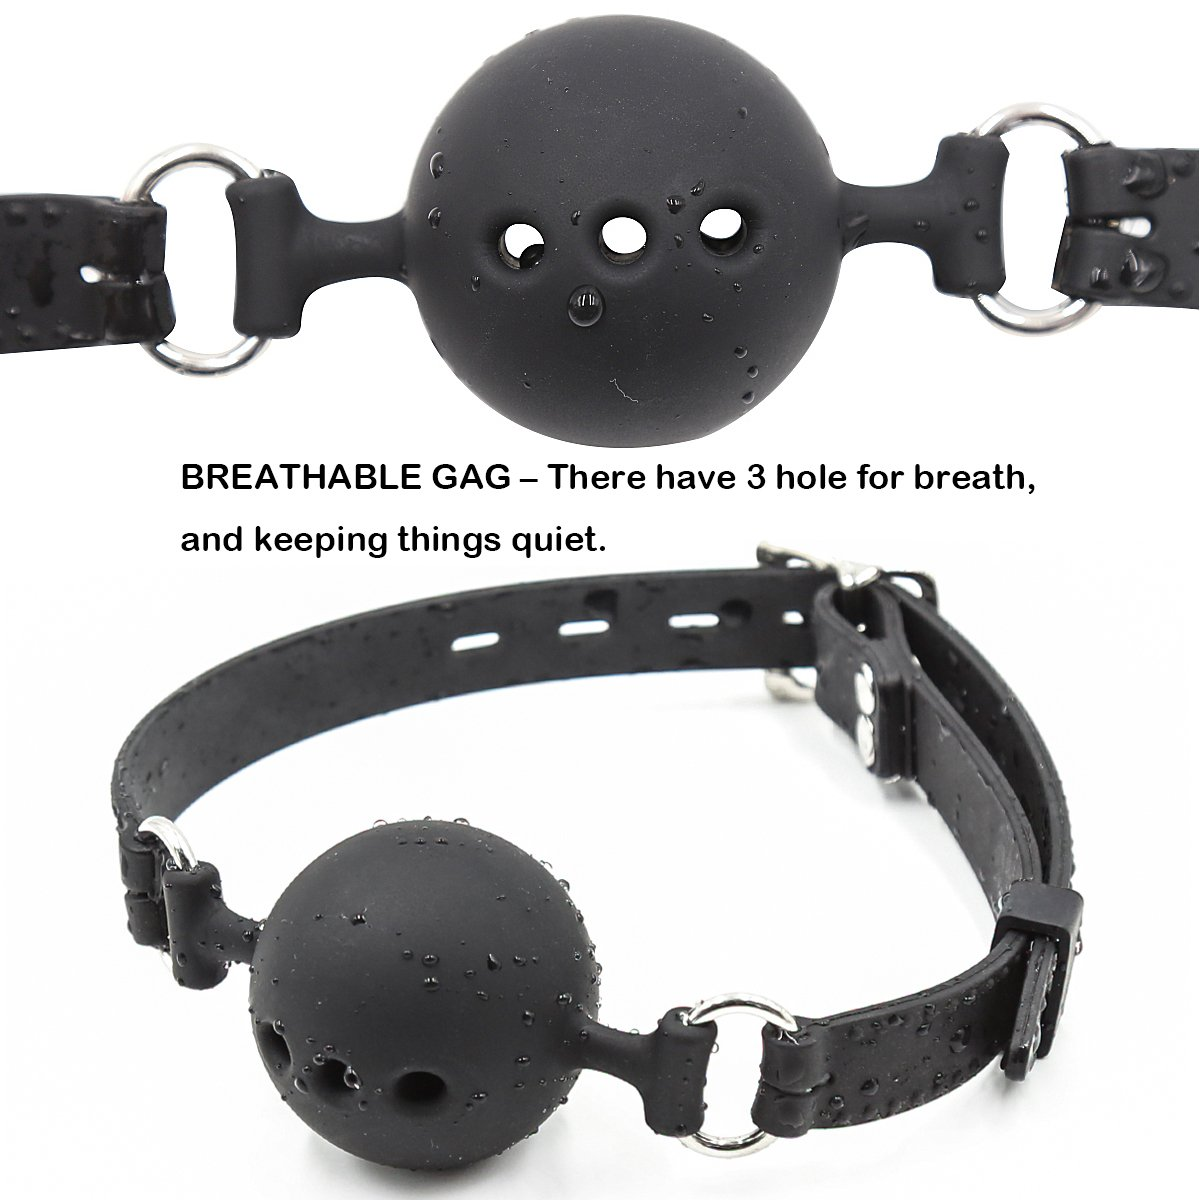 Silicone Breathable <font><b>Ball</b></font> <font><b>Gag</b></font> for Adult Bondage Restraints <font><b>Sex</b></font> Play Open Mouth <font><b>Gag</b></font> Harness <font><b>Gag</b></font> Slave Bondage <font><b>Sex</b></font> <font><b>Toys</b></font> For Couples image